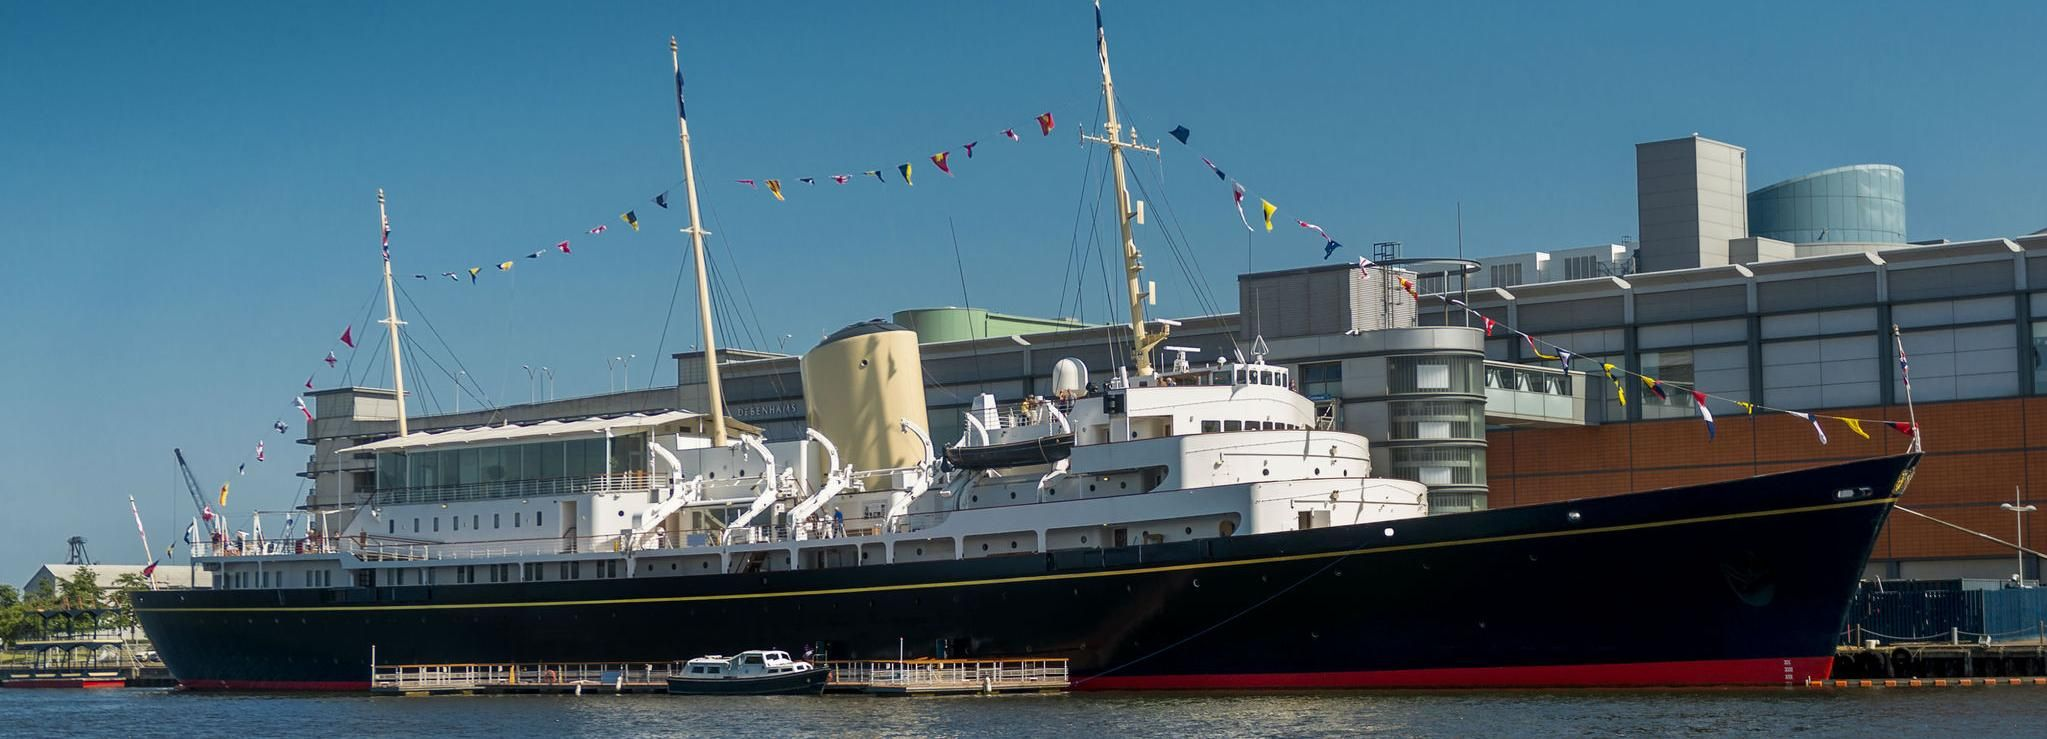 Edinburgh: Royal Yacht Britannia ticket & audiogids